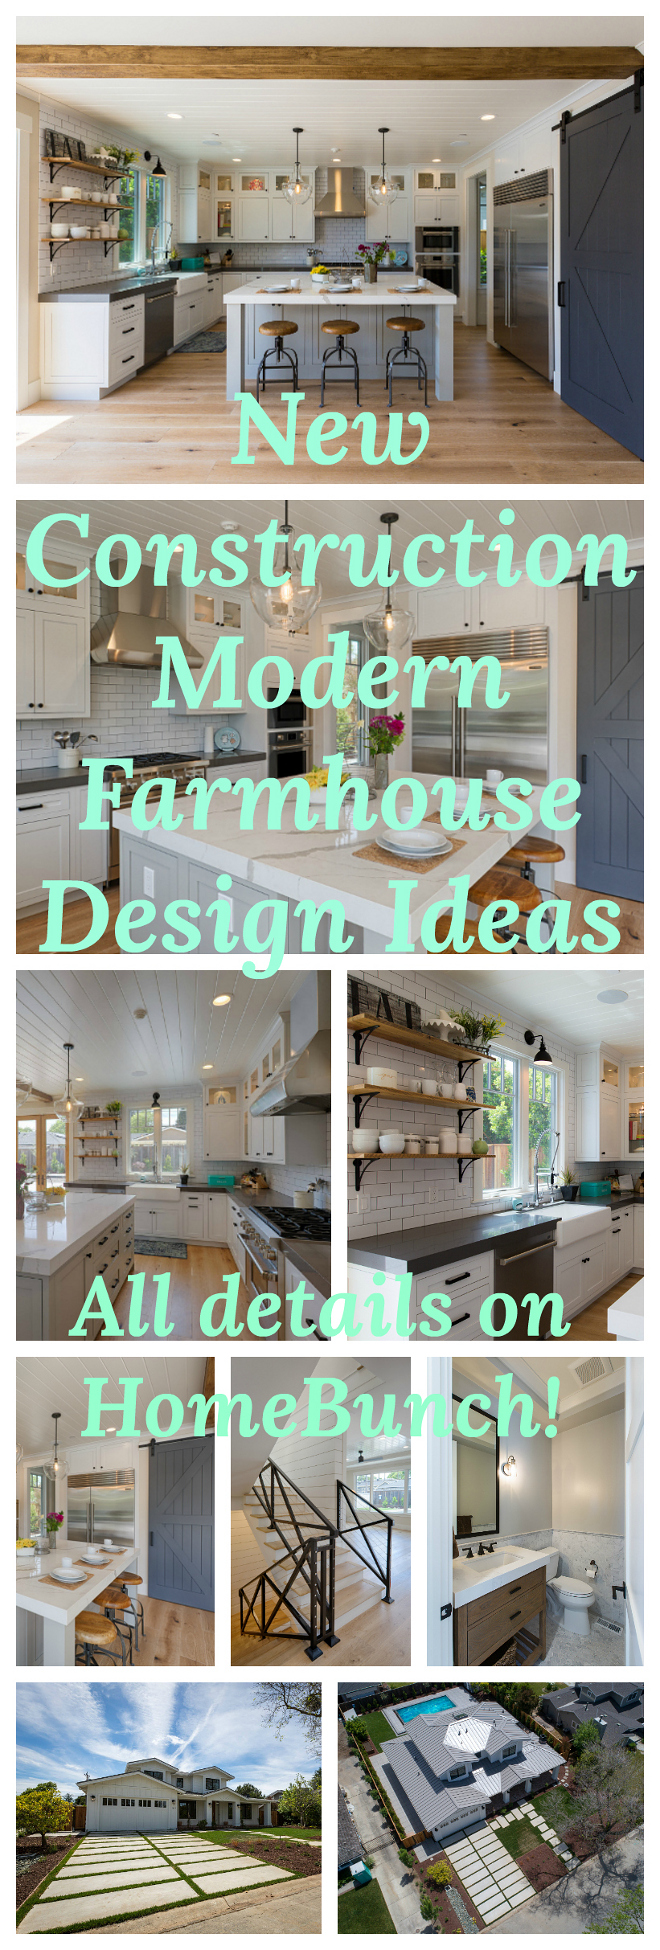 New Construction Modern Farmhouse Design Ideas. See all details and sources on Home Bunch